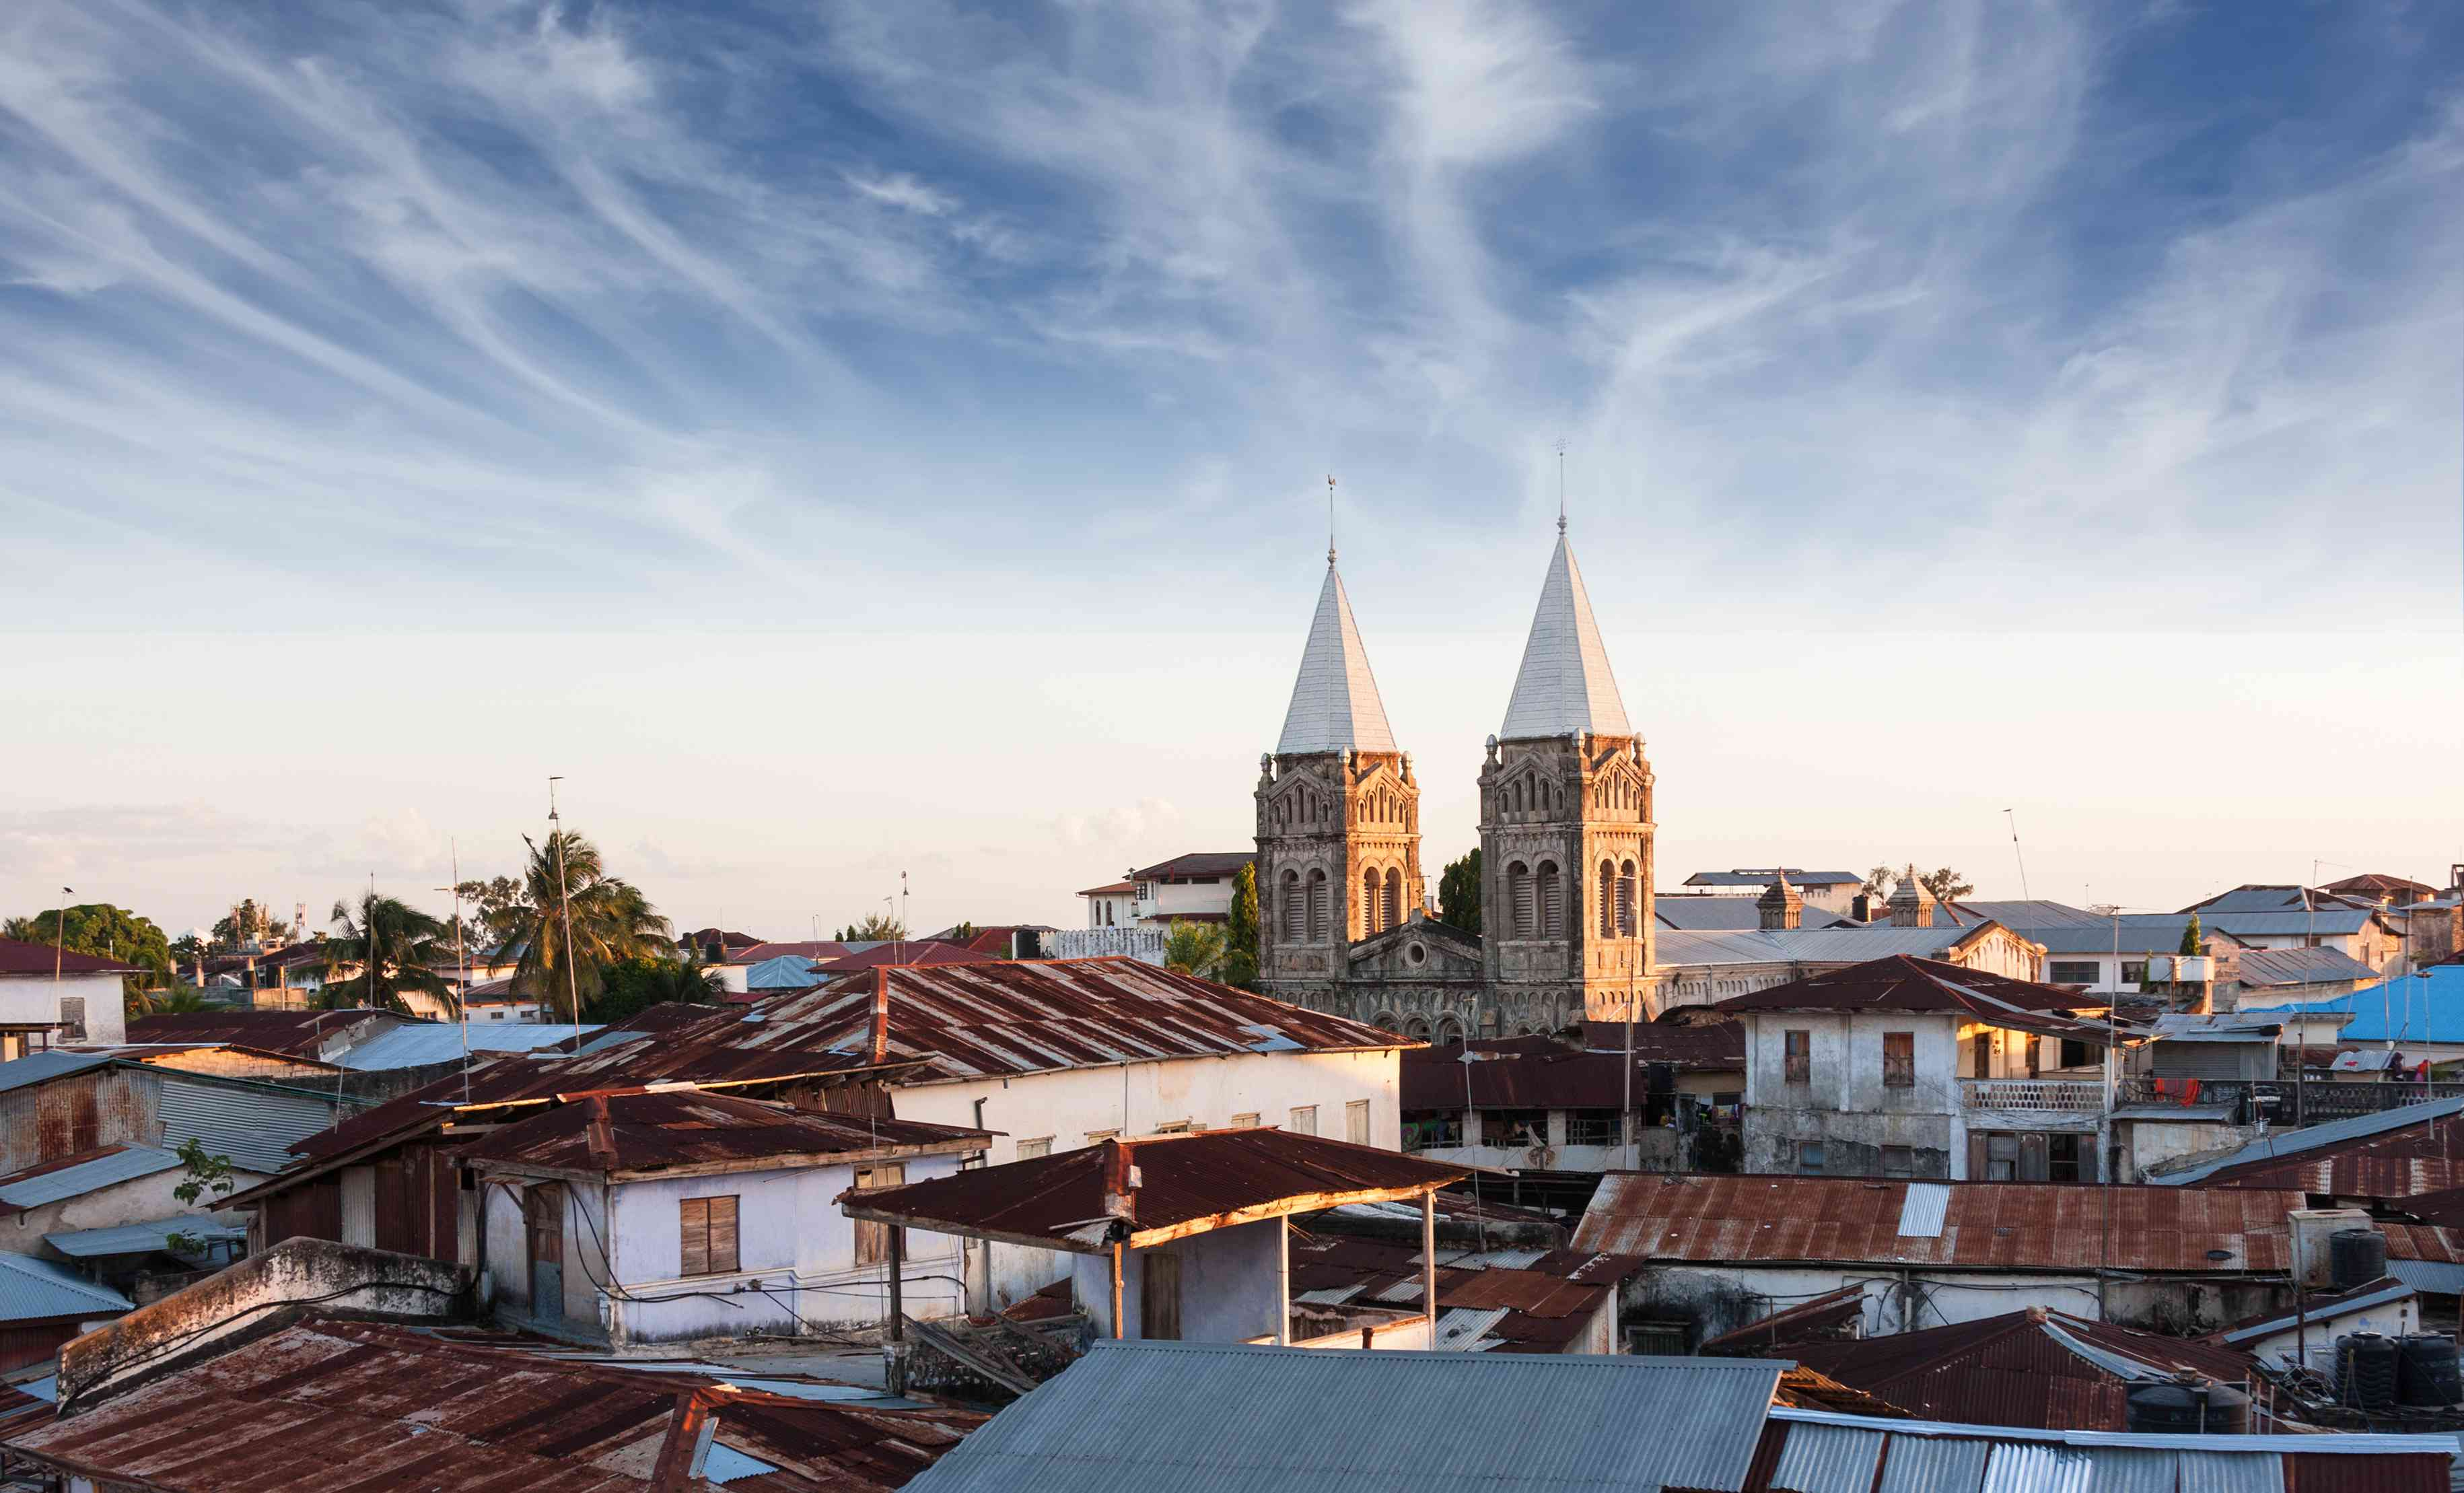 View over the rooftops of Stone Town, Zanzibar